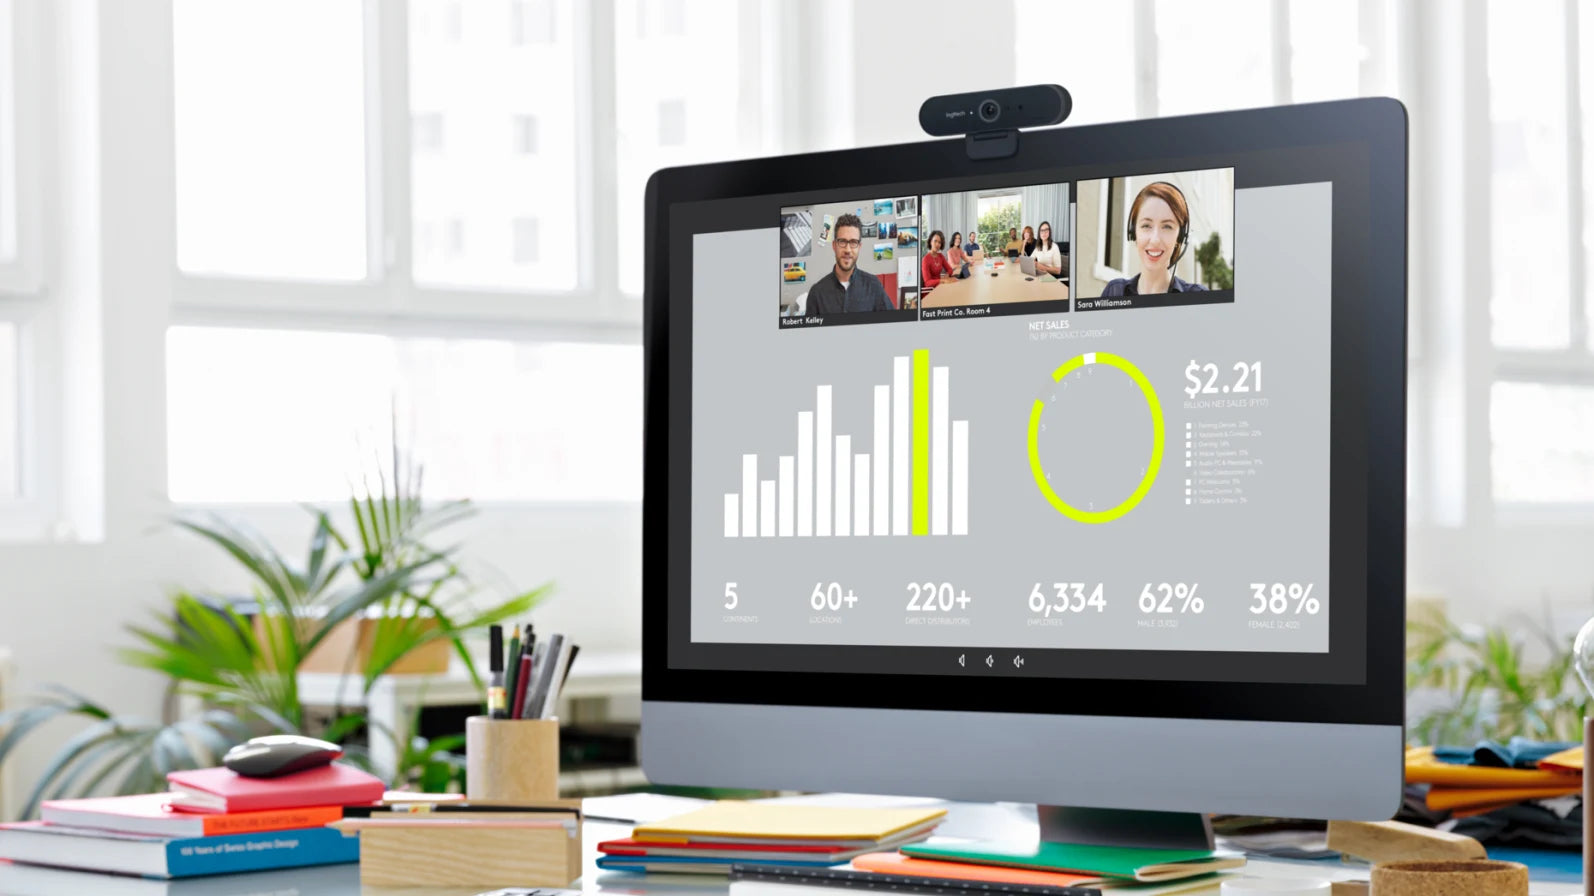 SMOOTH STREAMING, NO LAG Brio retains a high frame rate (up to 90 fps) in any lighting condition for high-quality recording, asynchronous presentation sharing with Teams, and smooth, fluid gaming broadcasts that keep up with your every move. The higher frame rates are ideal for any situation that requires slow motion or an extra-smooth, fluid video stream.